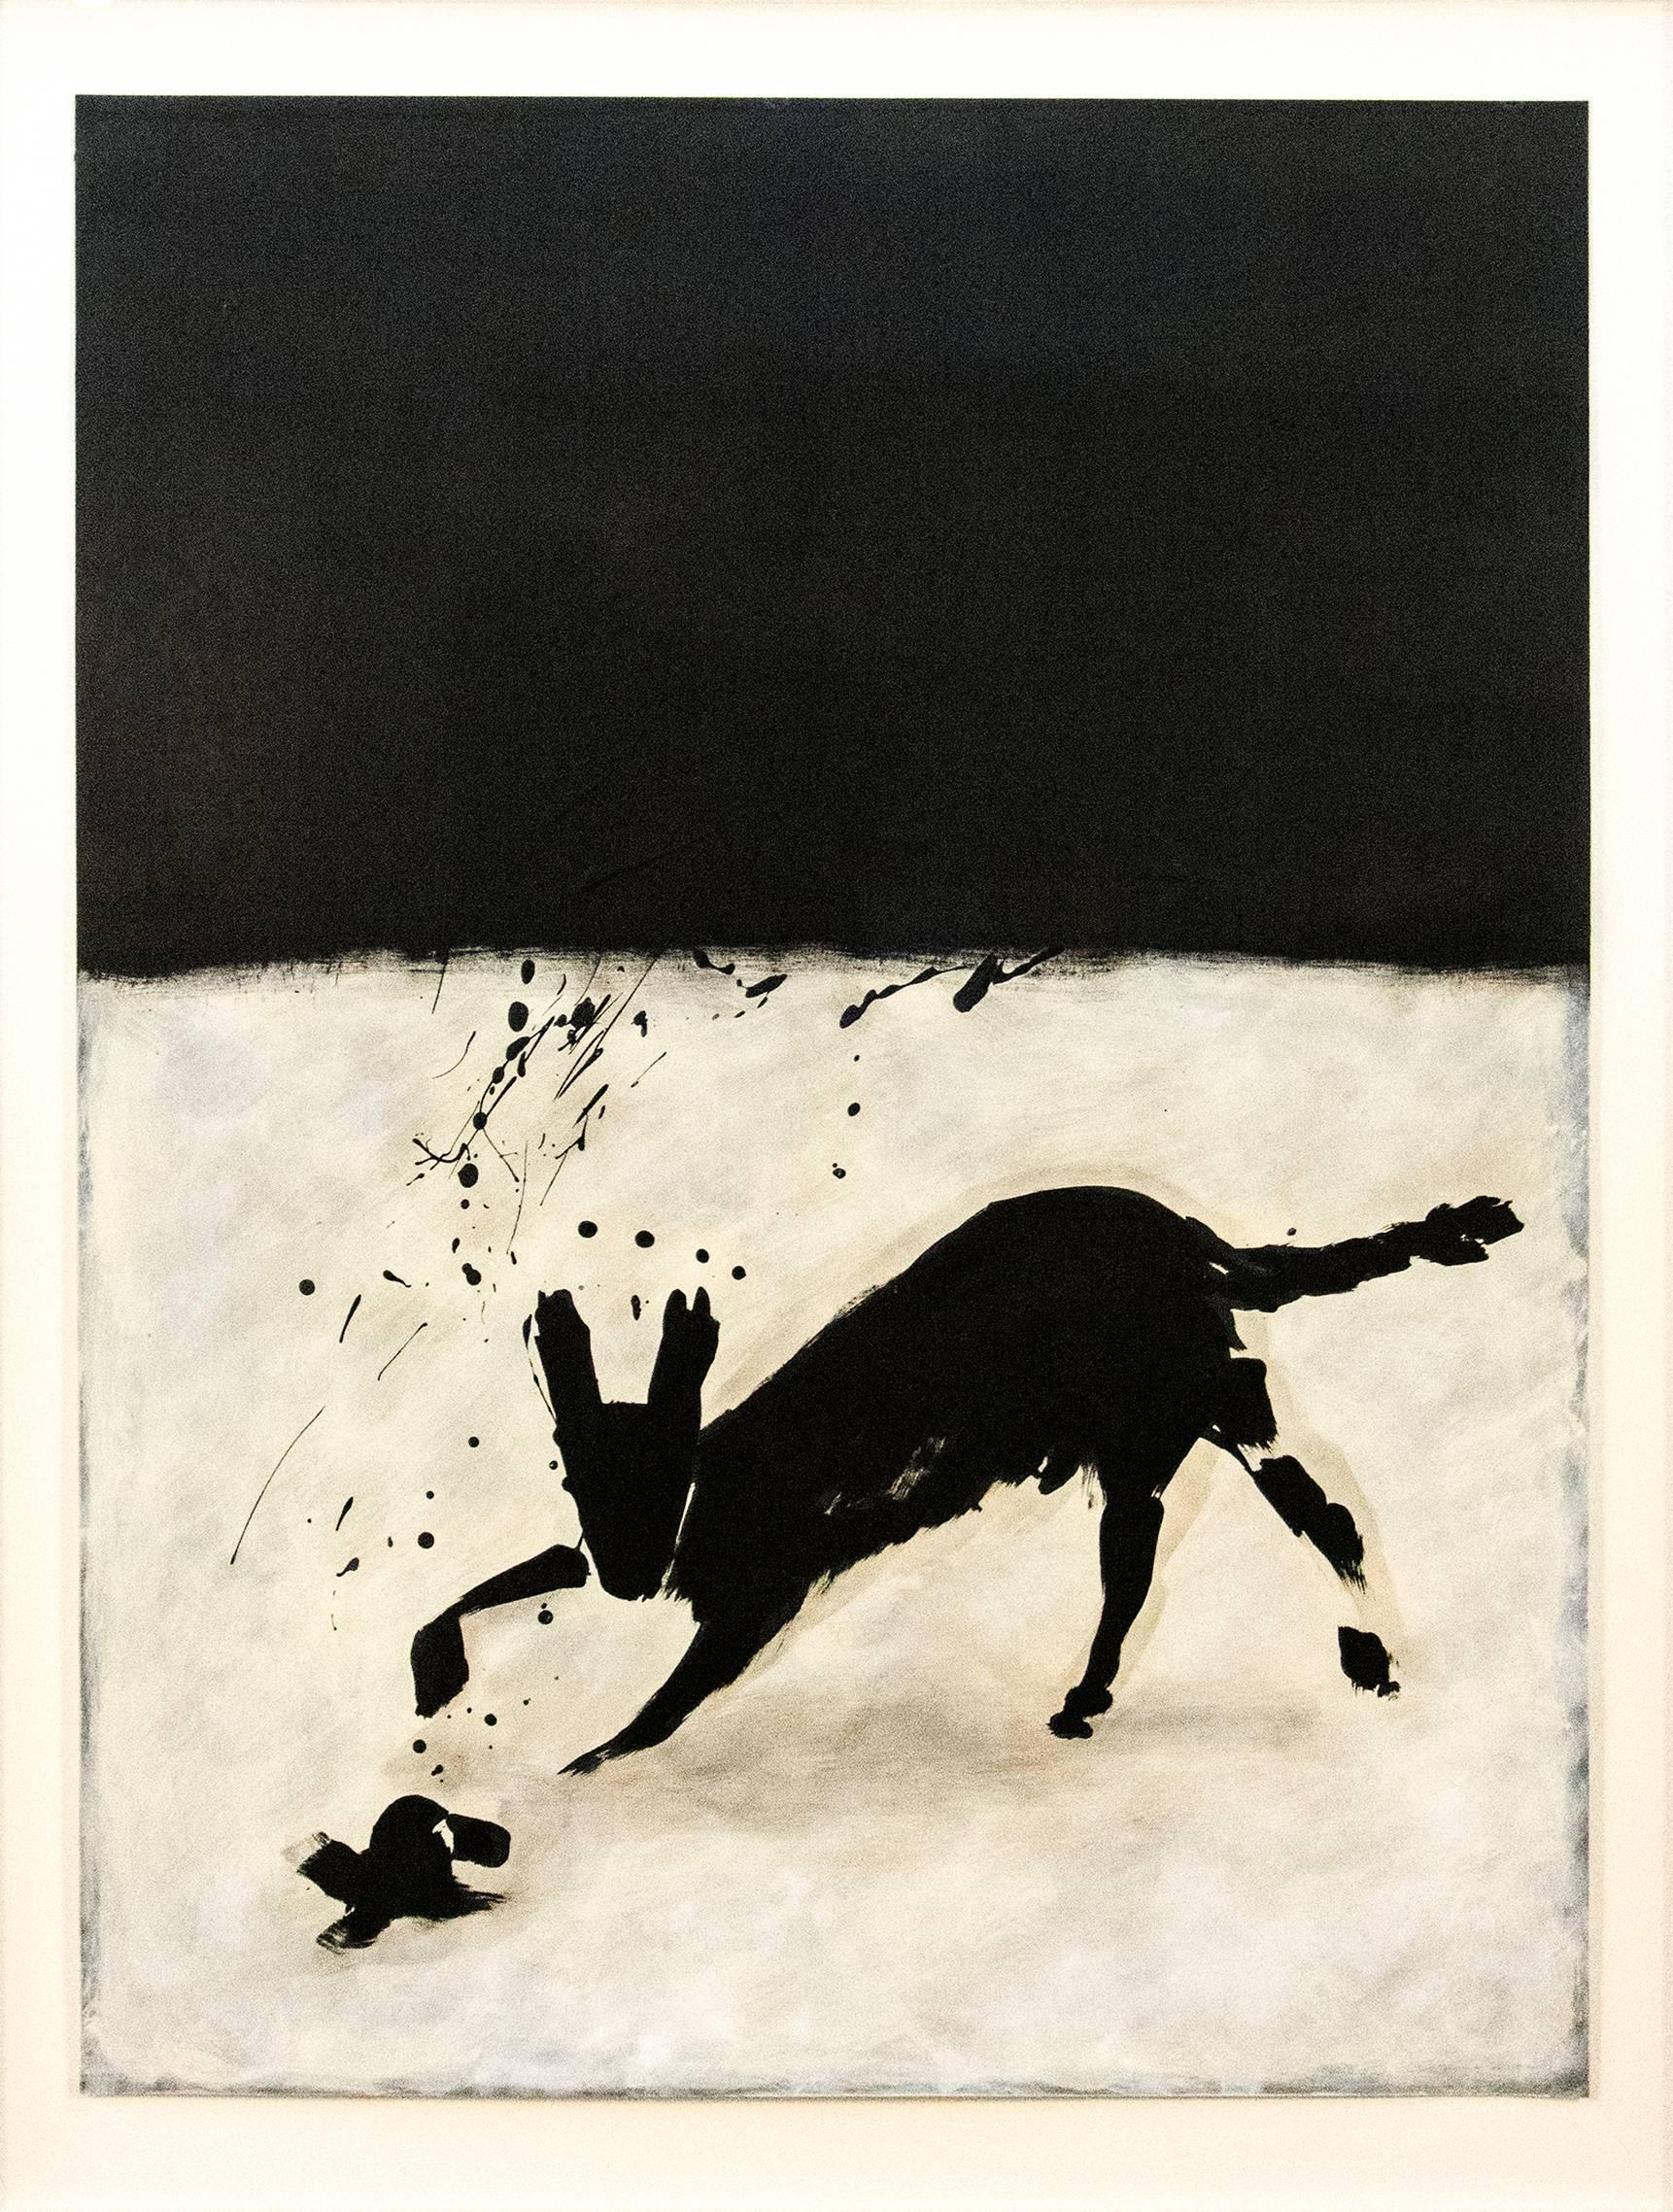 Coyote - black & white, minimalist, figurative abstract, ink, latex on paper